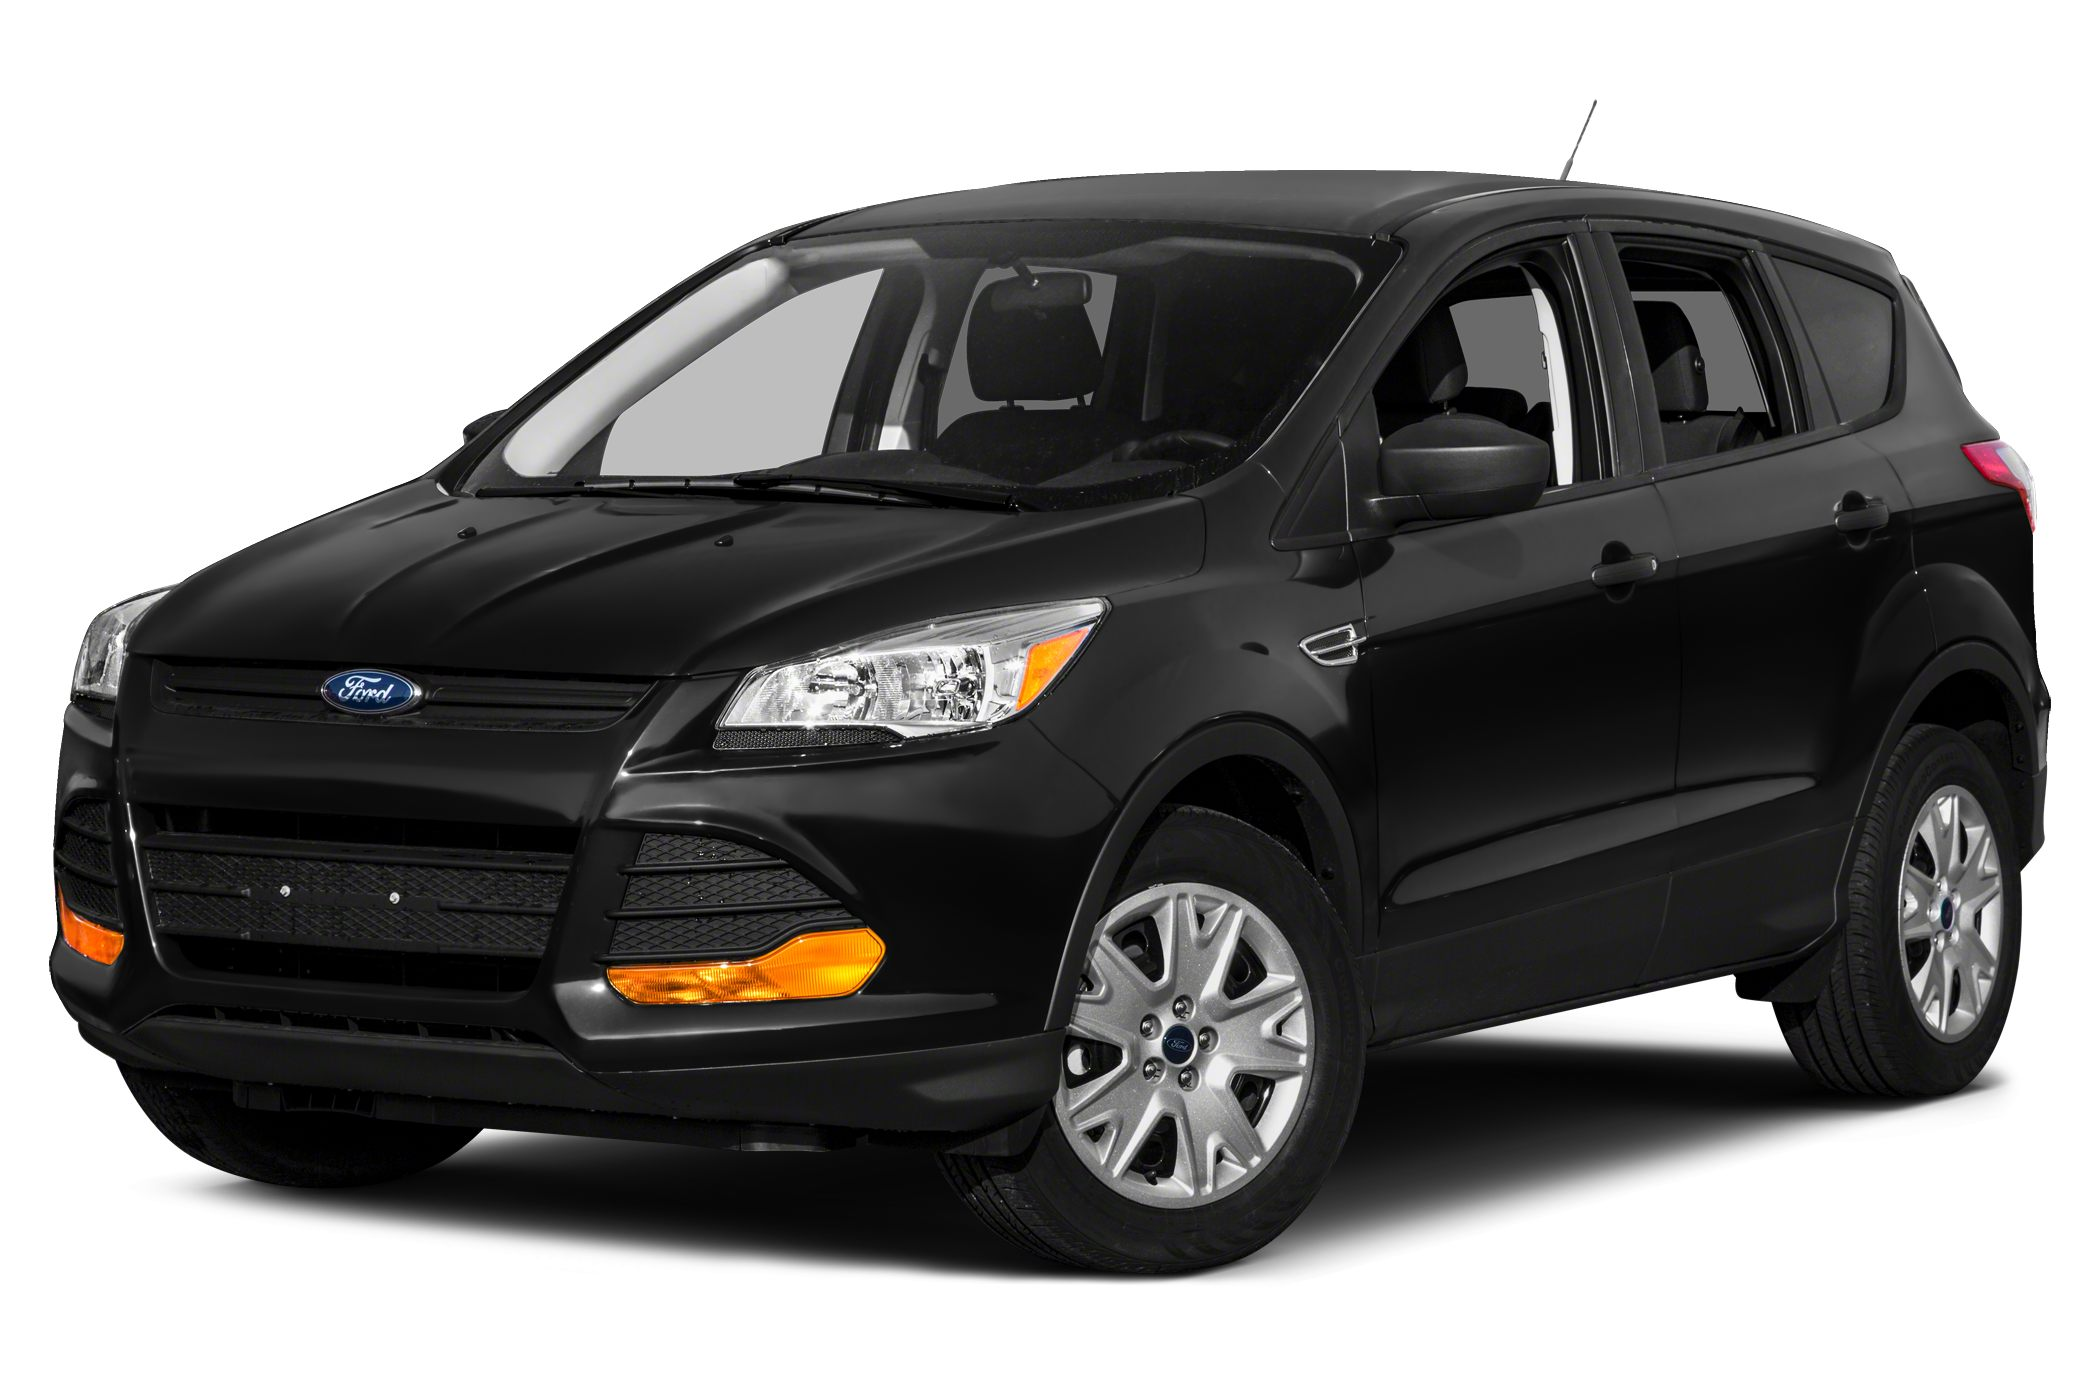 2013 Ford Escape Titanium SUV for sale in Lancaster for $25,795 with 26,104 miles